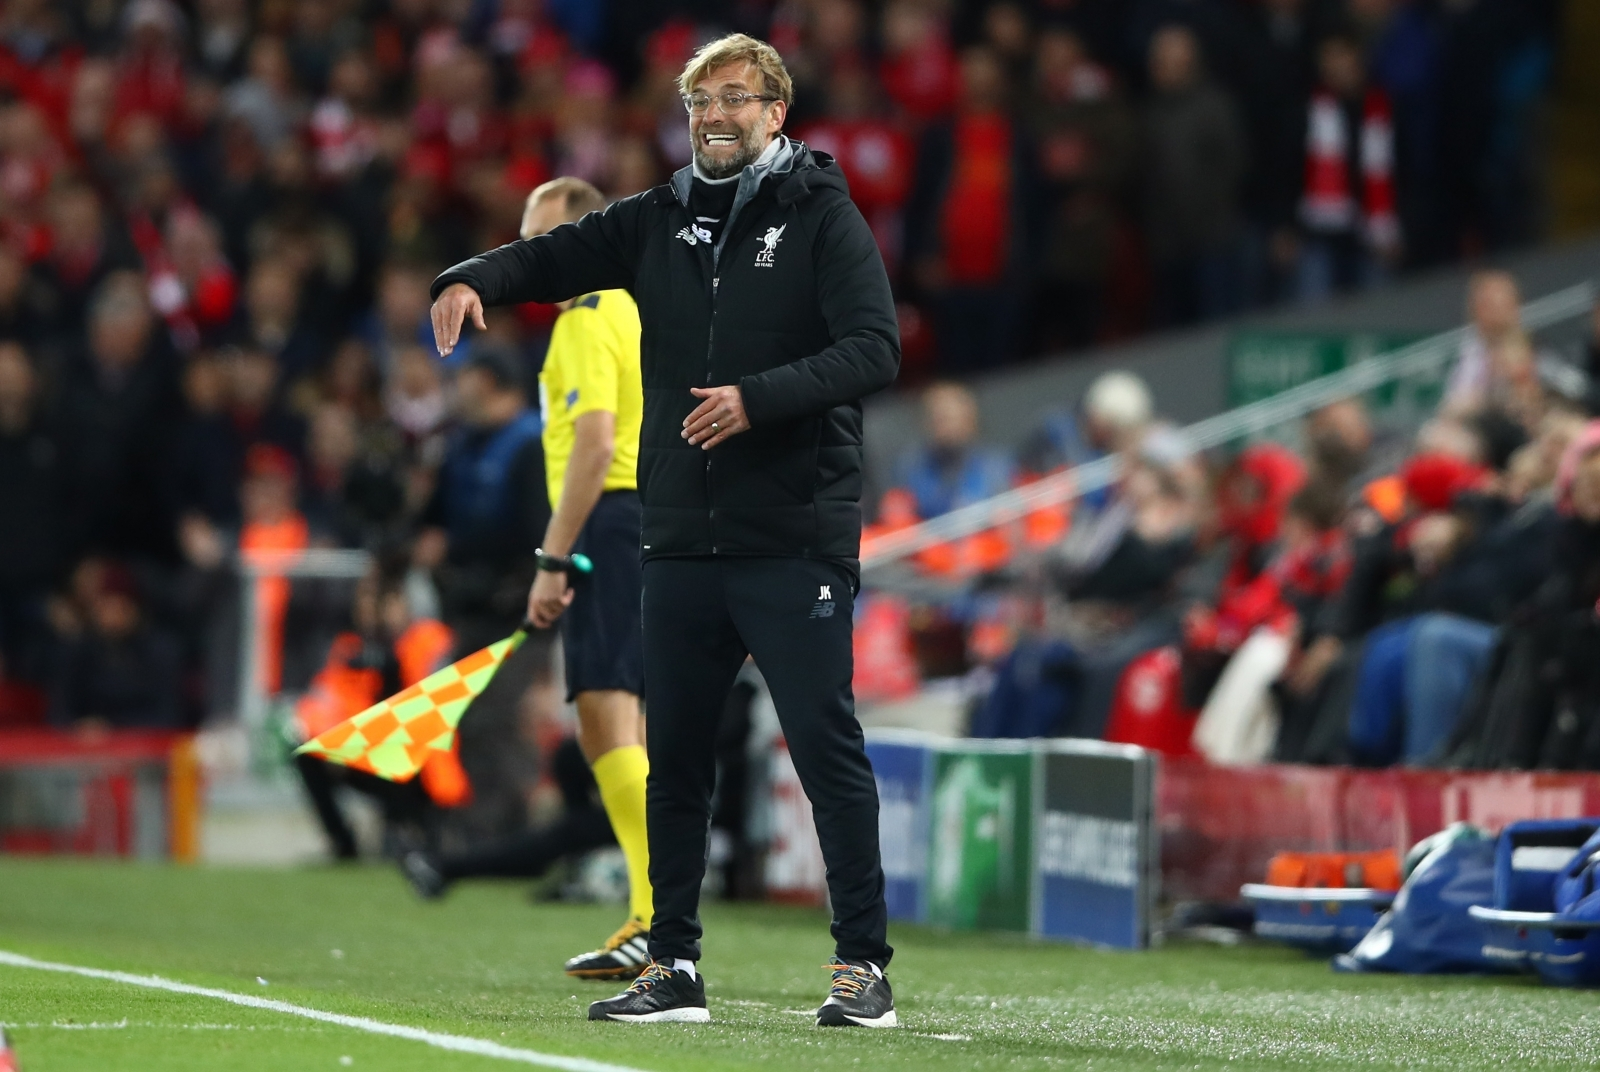 Allardyce gives honest thoughts on fiery Klopp interview